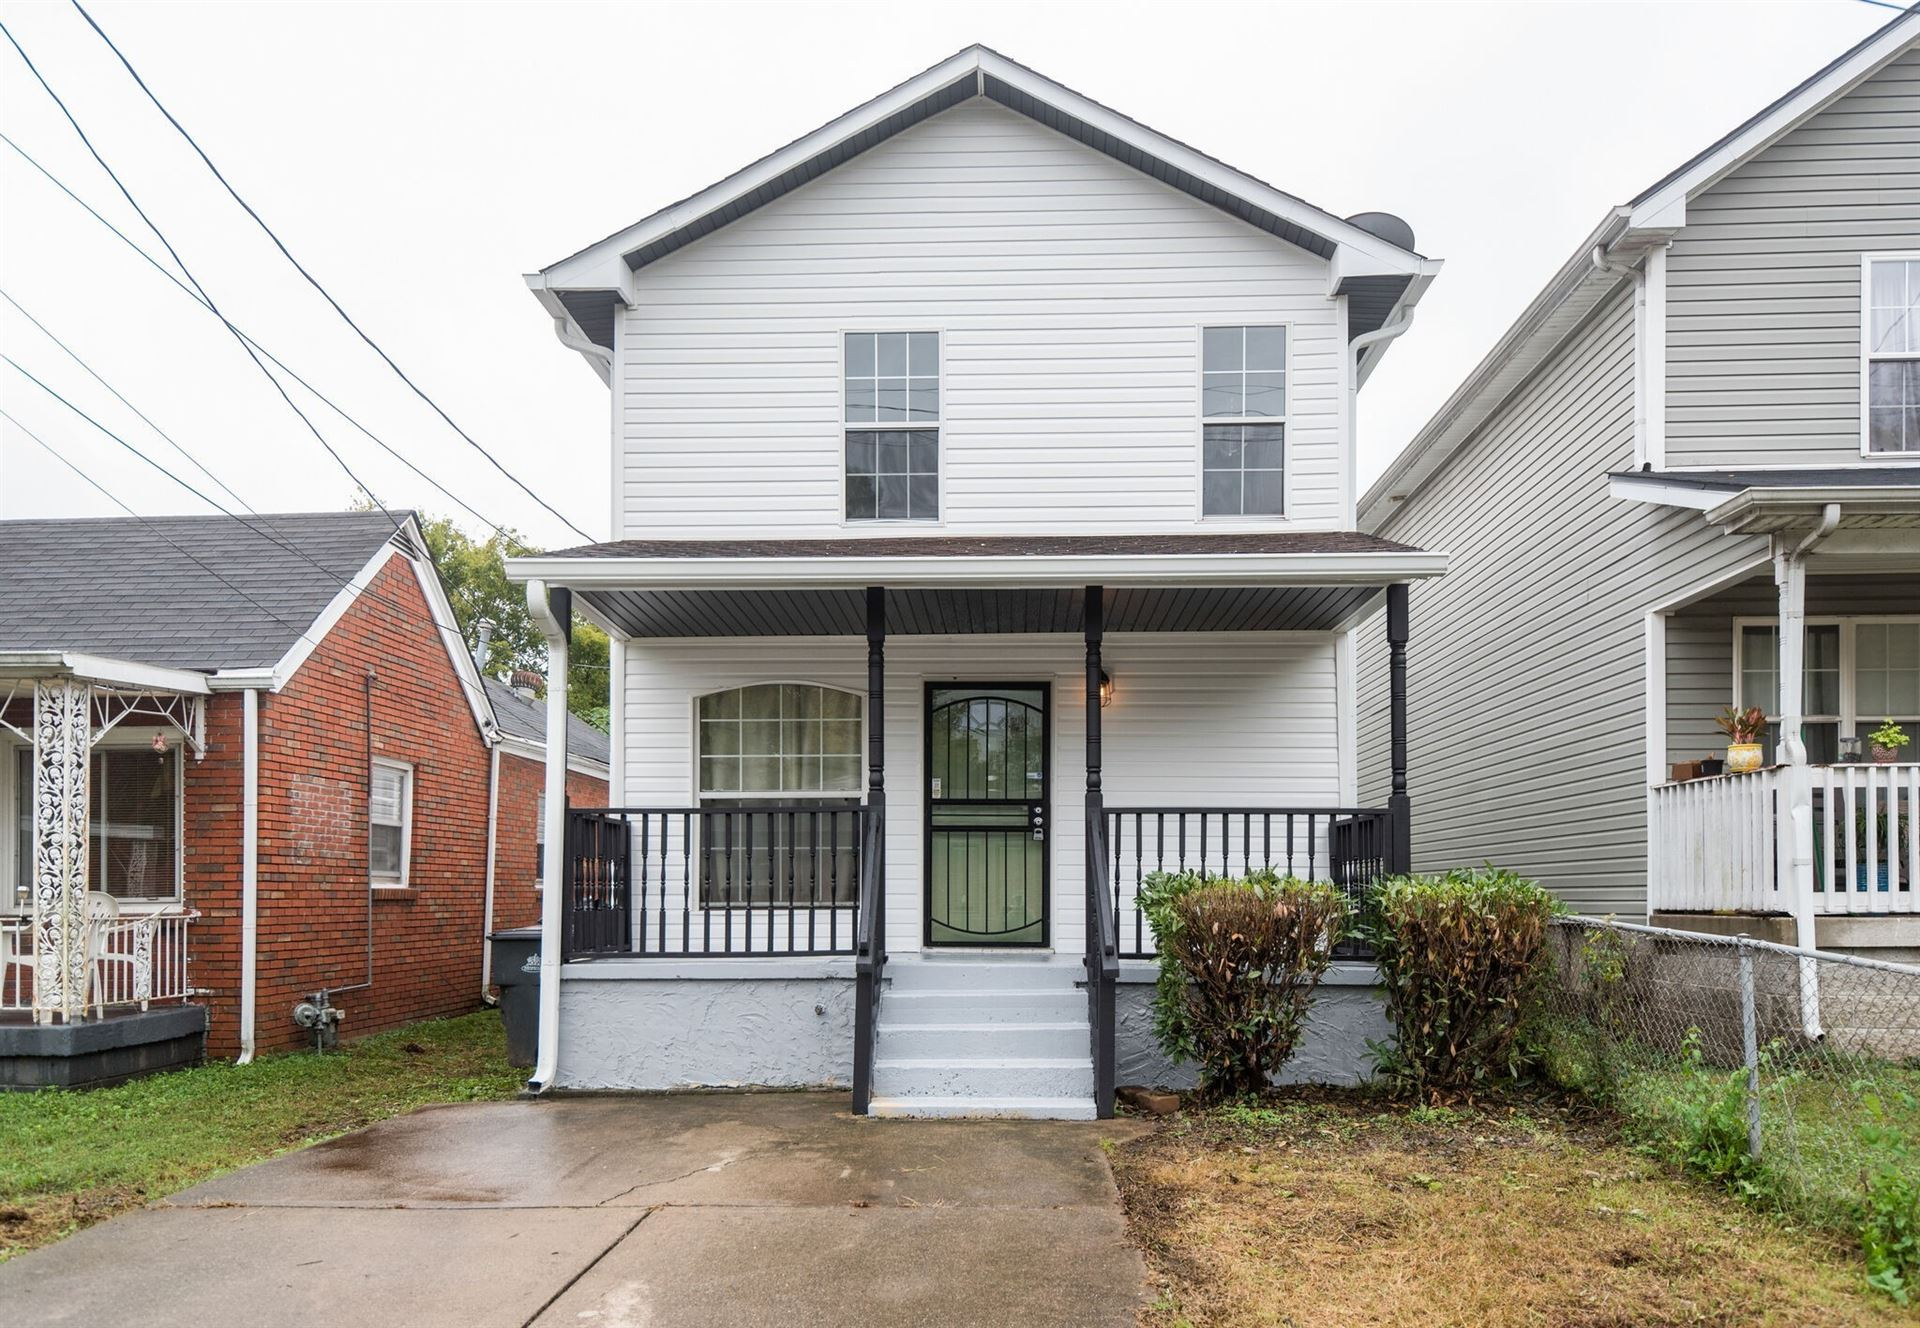 1609 Wheless St, Nashville, TN 37208 - MLS#: 2235731